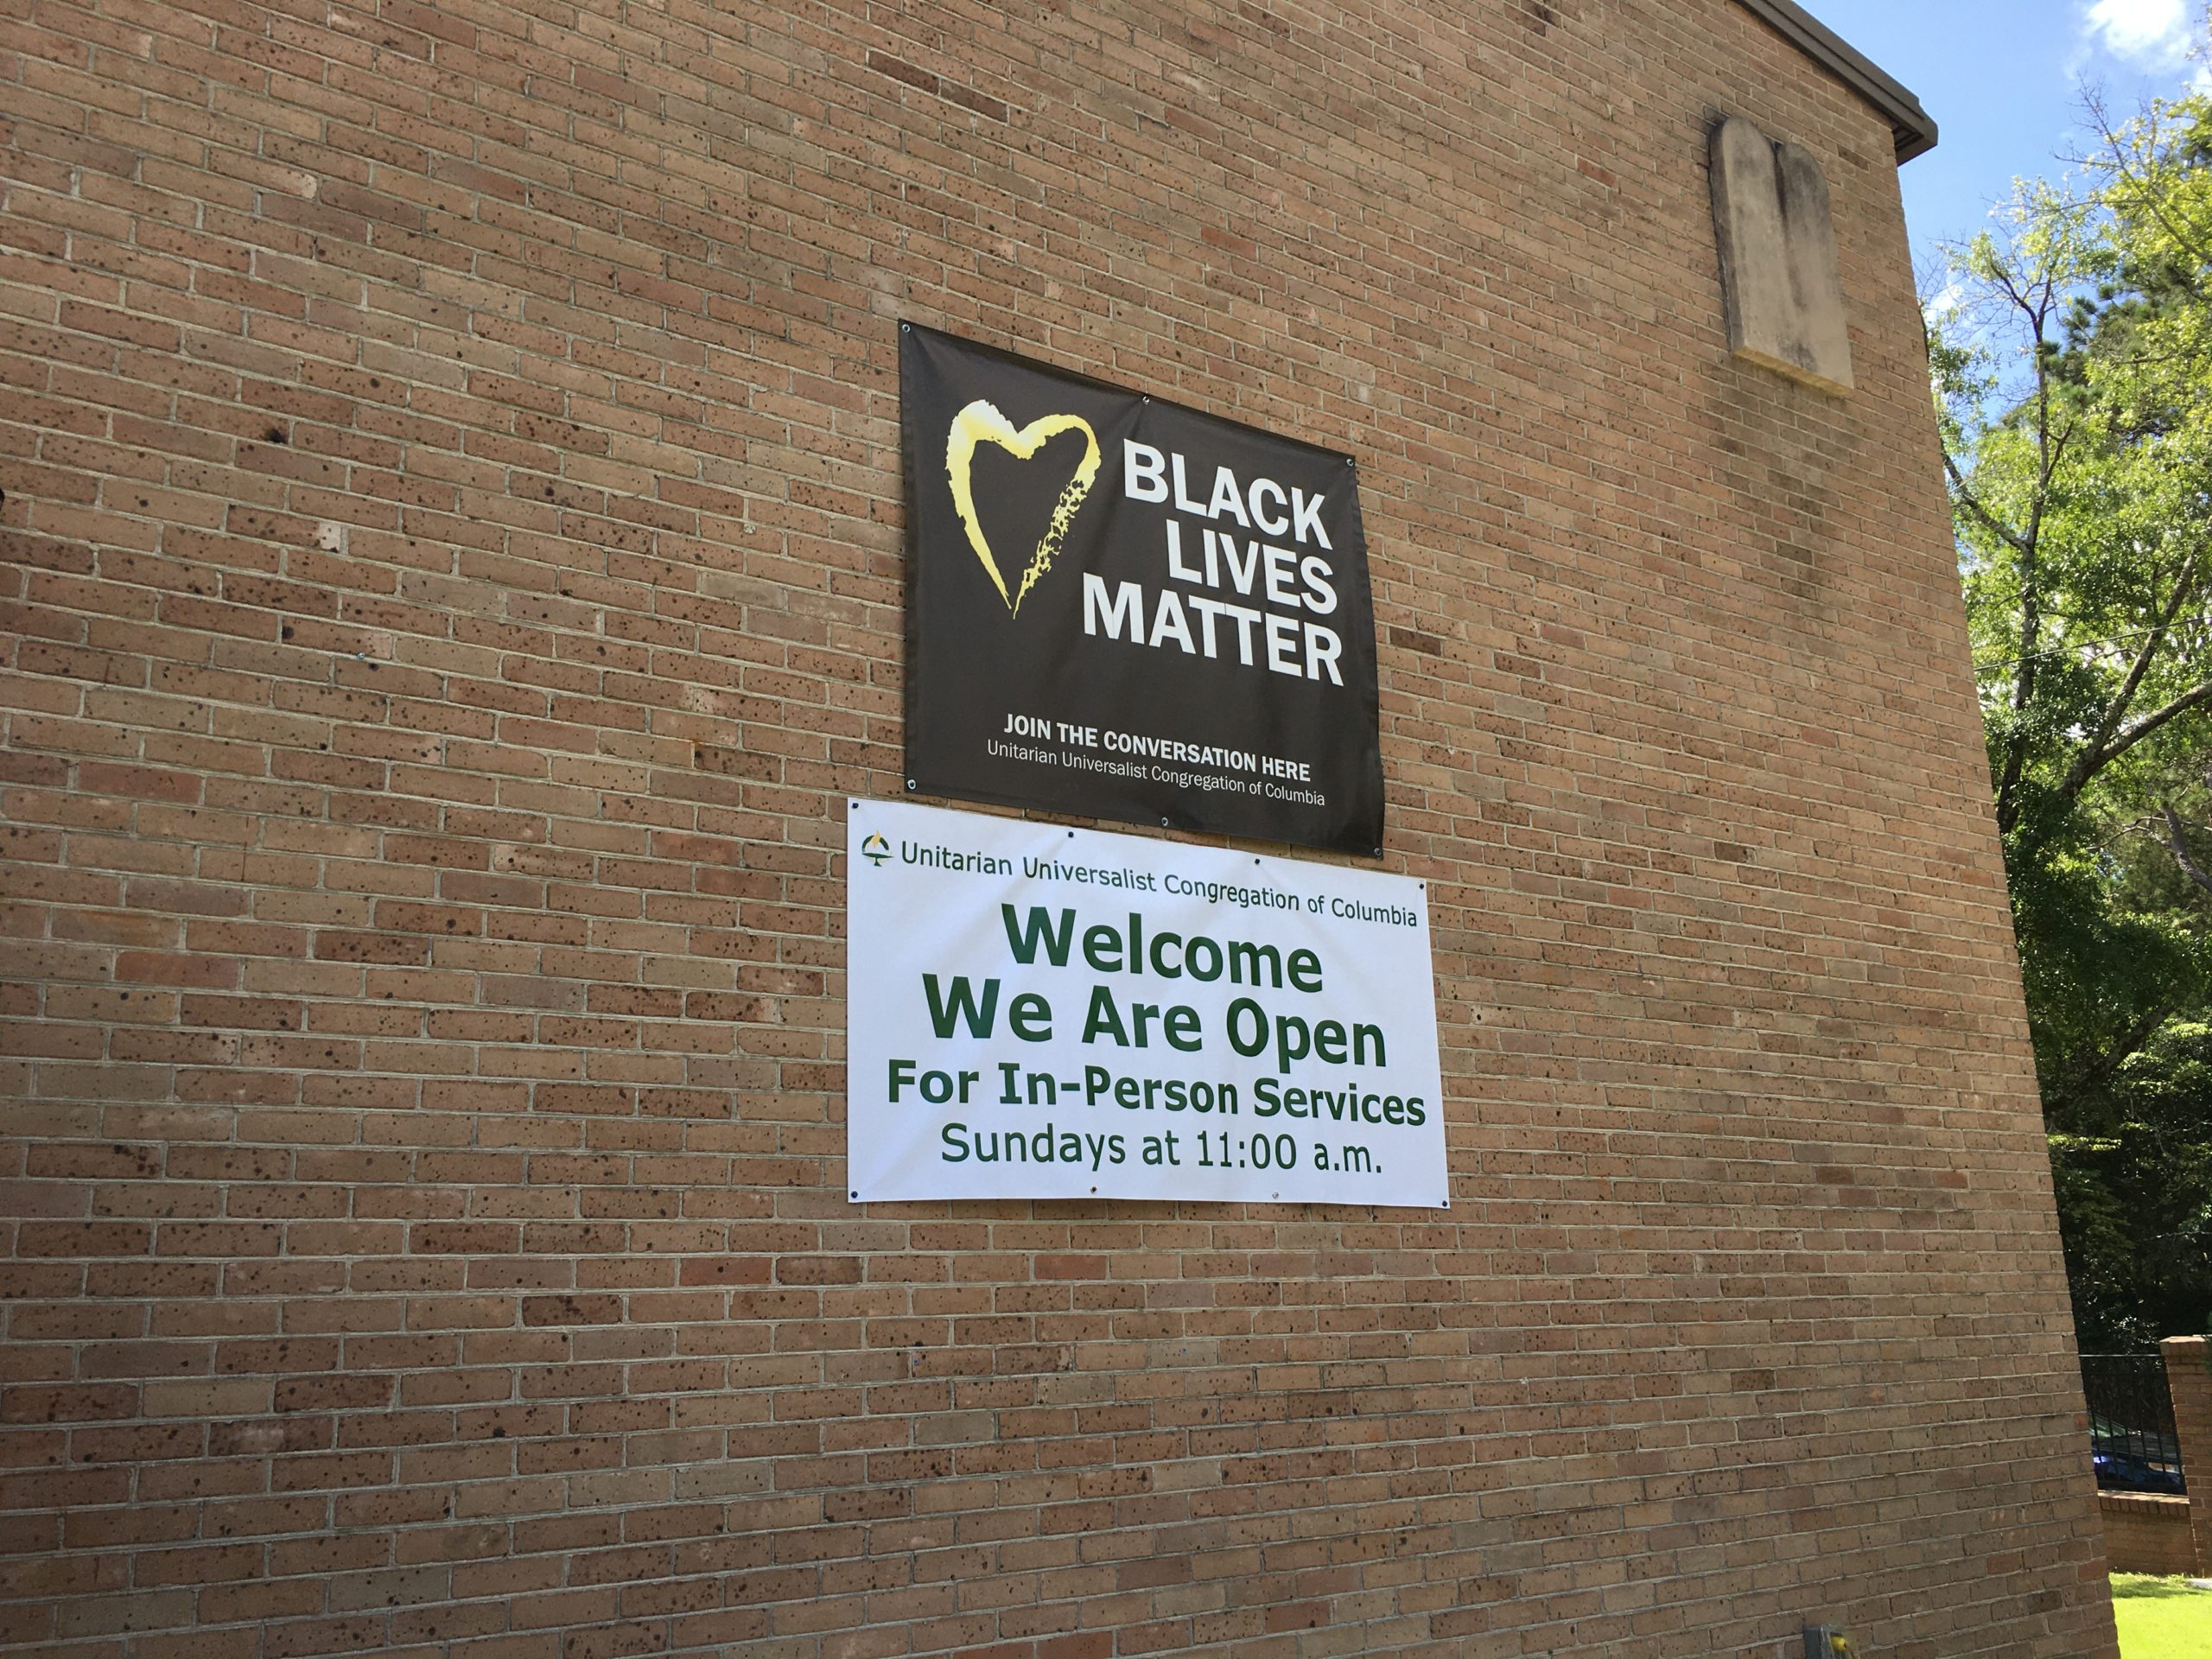 Black Lives Matter and Reopening signs on side of building